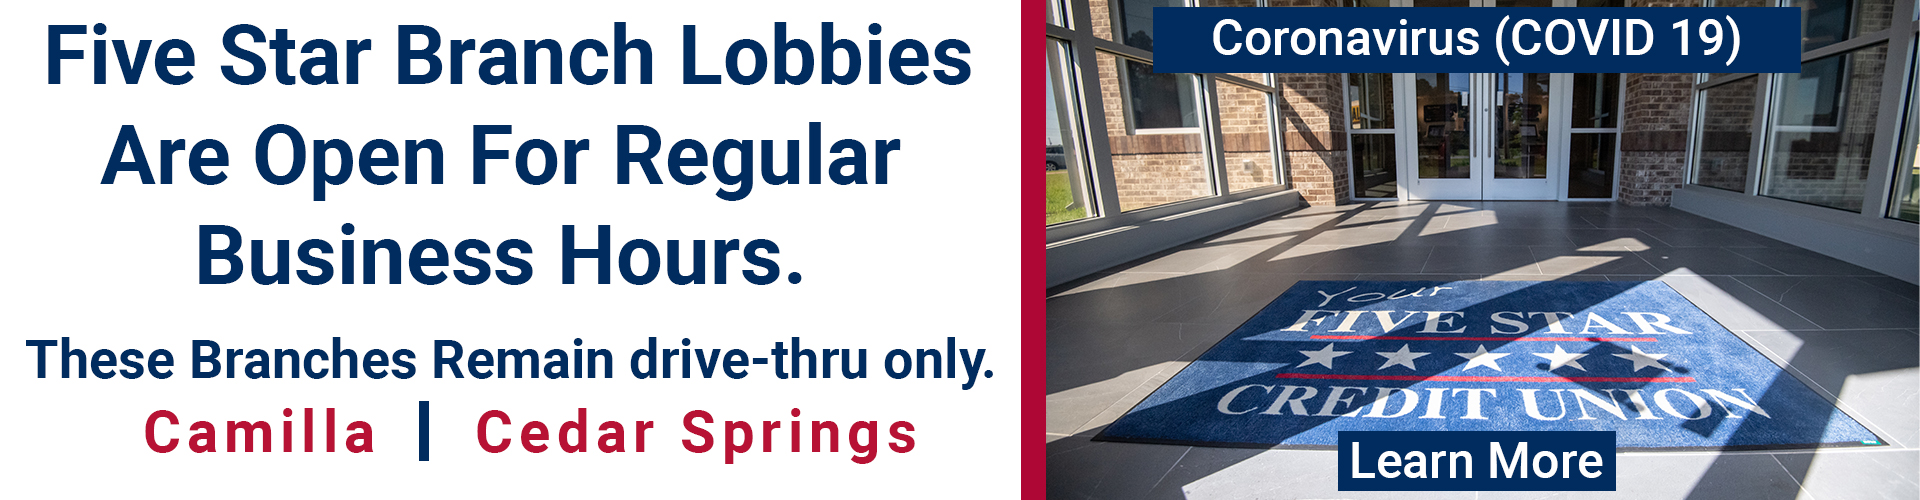 Five Star Branch lobbies are open for regular business hours.